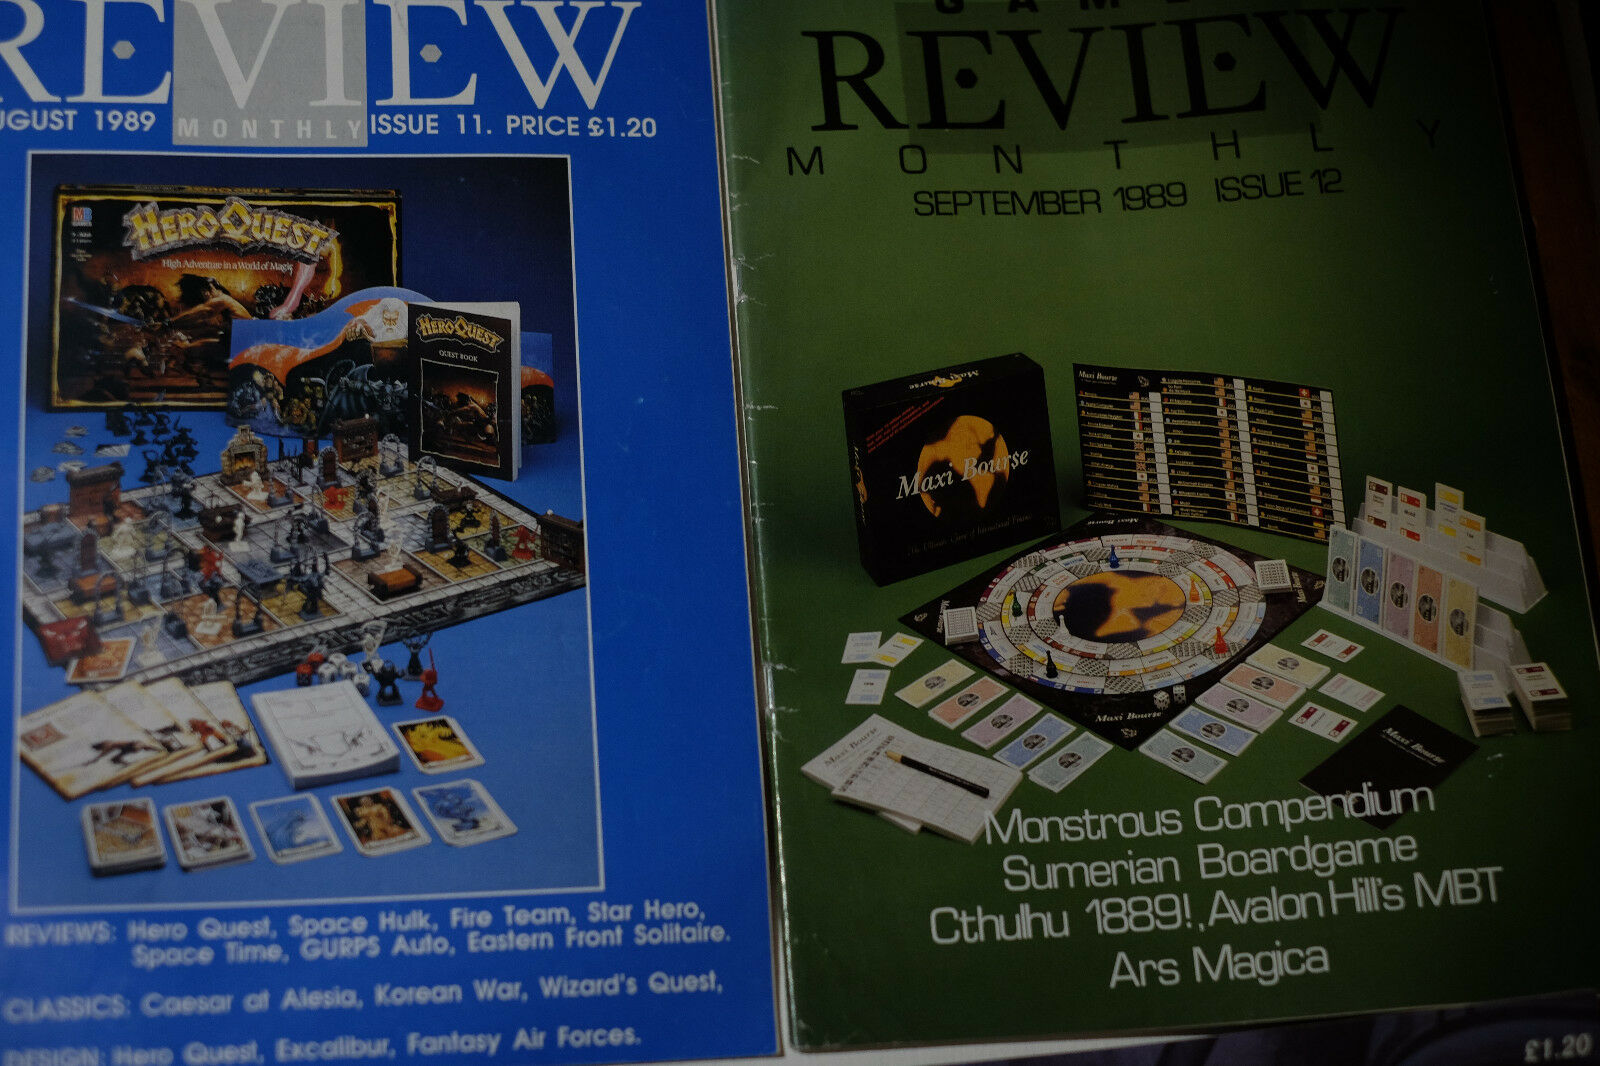 Games Review Monthly Heft 1-17 - komplett October 88 to February 1990